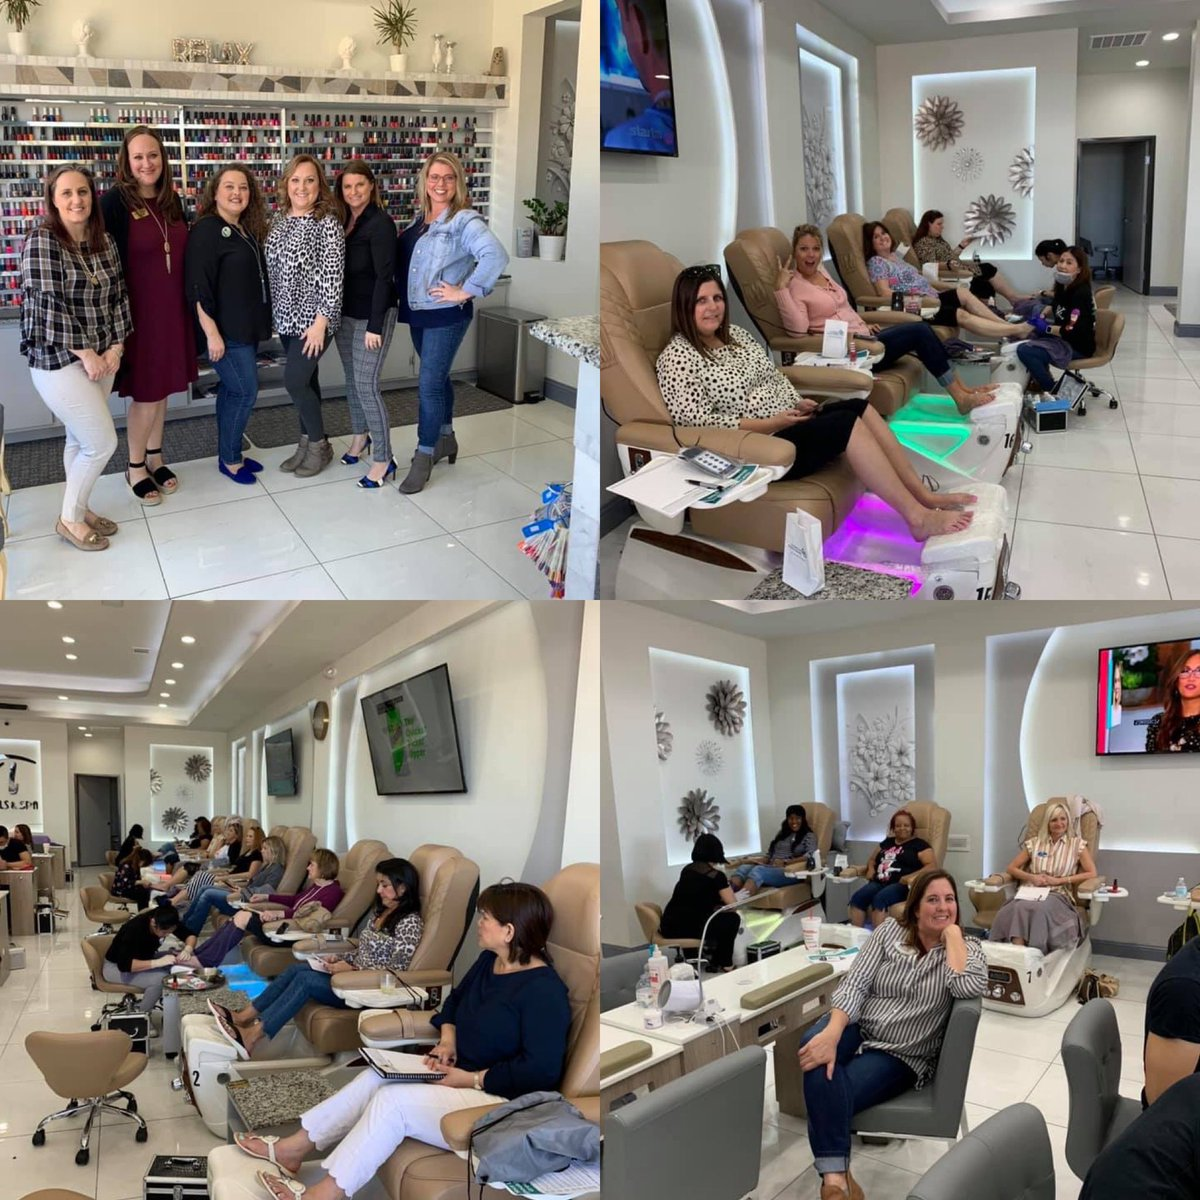 Who doesn't love a great pedicure and knowledge to make your business grow? Thank you to all our #RockStarRealtors .   #palmbosandprovidence #closewithprovidence #loansbyglenda #lendinginheels #sginspections #theladyinblue #amytoungetinsurance #ahs #jenthehomrwarrantygirlpic.twitter.com/j78YdJVUg0